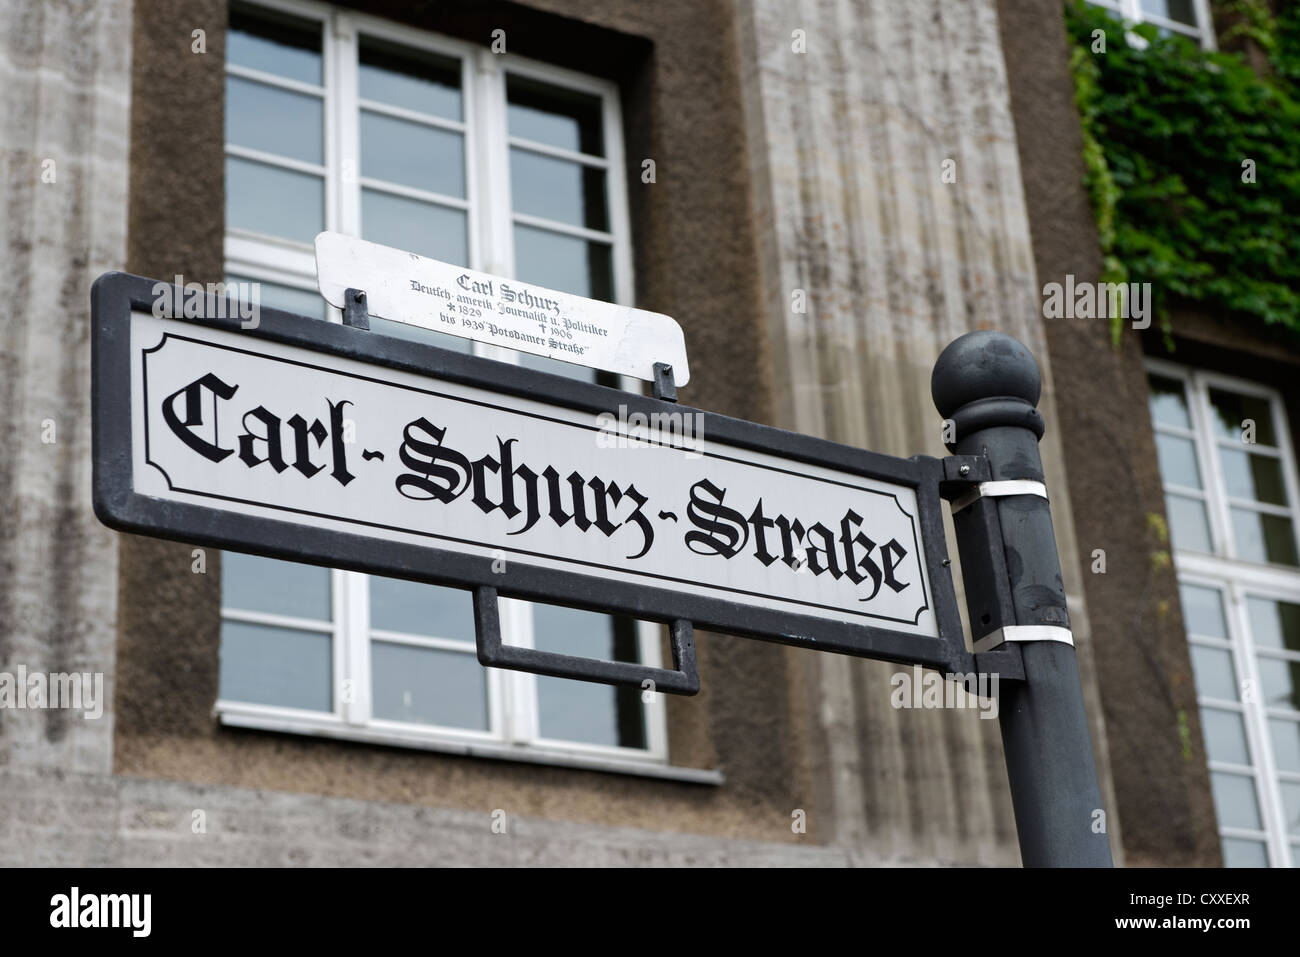 Street named after Carl Schurz, 1829 - 1906, a German politician and revolutionist, American general, statesman - Stock Image